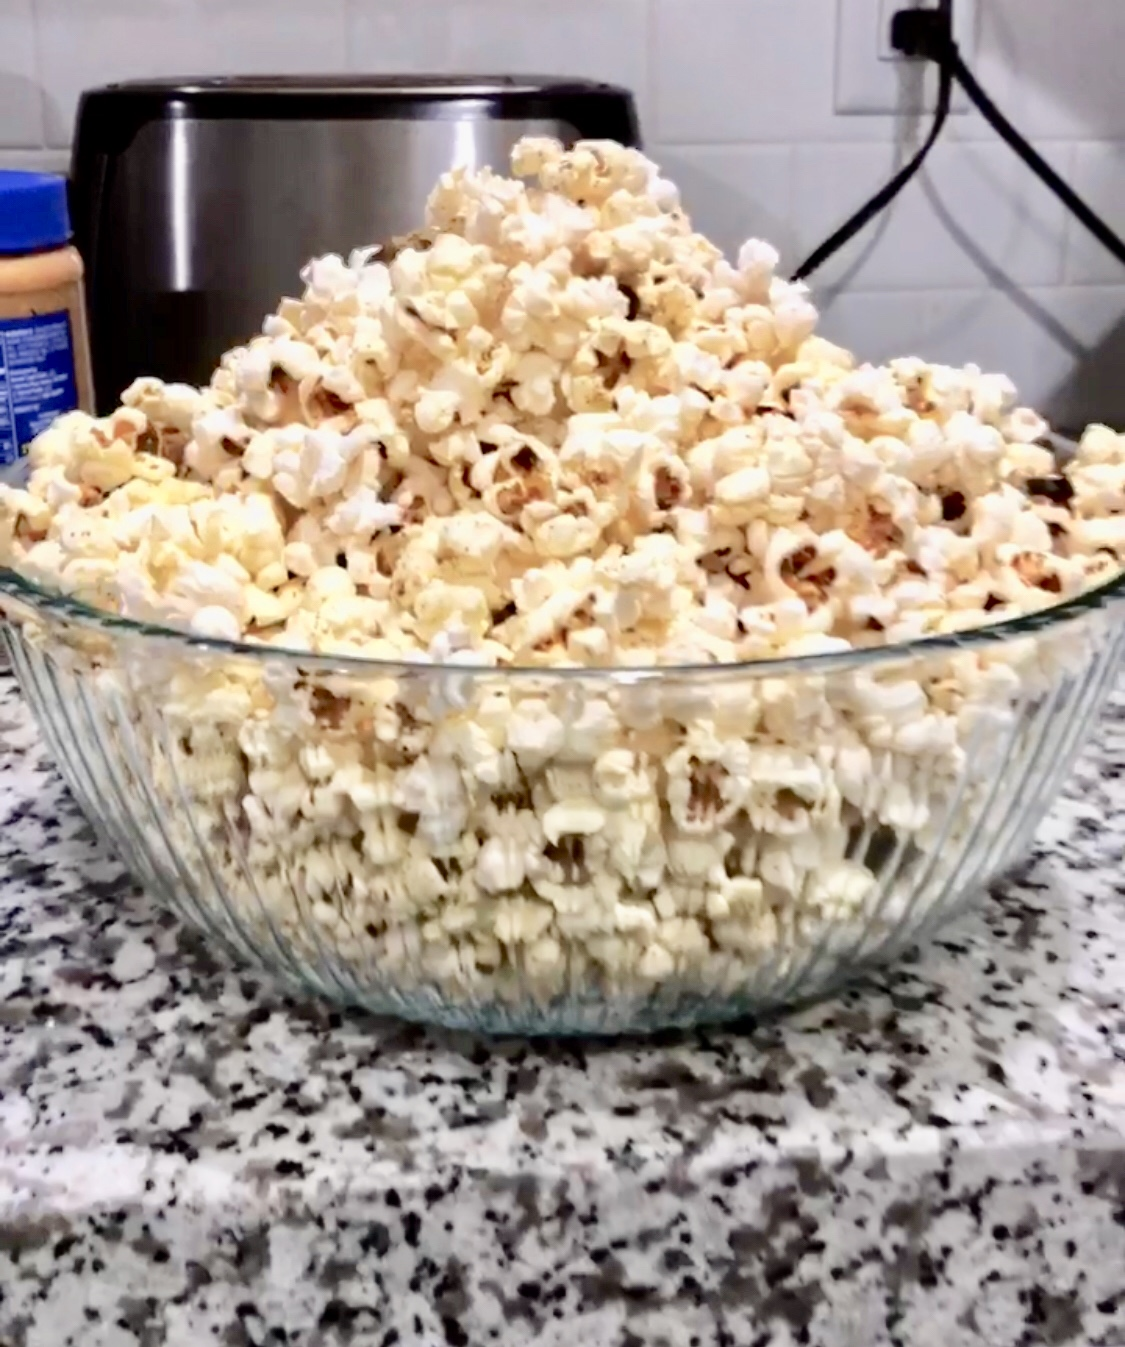 Jalepéno Popcorn - 1 1/2 cups of yellow popcorn kernels1/2 teaspoon of Lowry's  seasoned salt1/4  teaspoon of garlic powder1/8 teaspoon of paprika1 cup of jalapeños from a jarVegetable oil Directions:Place some oil and the jalapeños in a big pot and fry them till they start to turn a little brown. Once the jalapeños are browning add the rest of the ingredients and mix it all around. The oil should be enough to cover half of the kernels. As the popcorn pops move the pot around to keep the kernels moving so it doesn't burn. This makes a lot of popcorn so it's perfect for a movie night with friends or family!